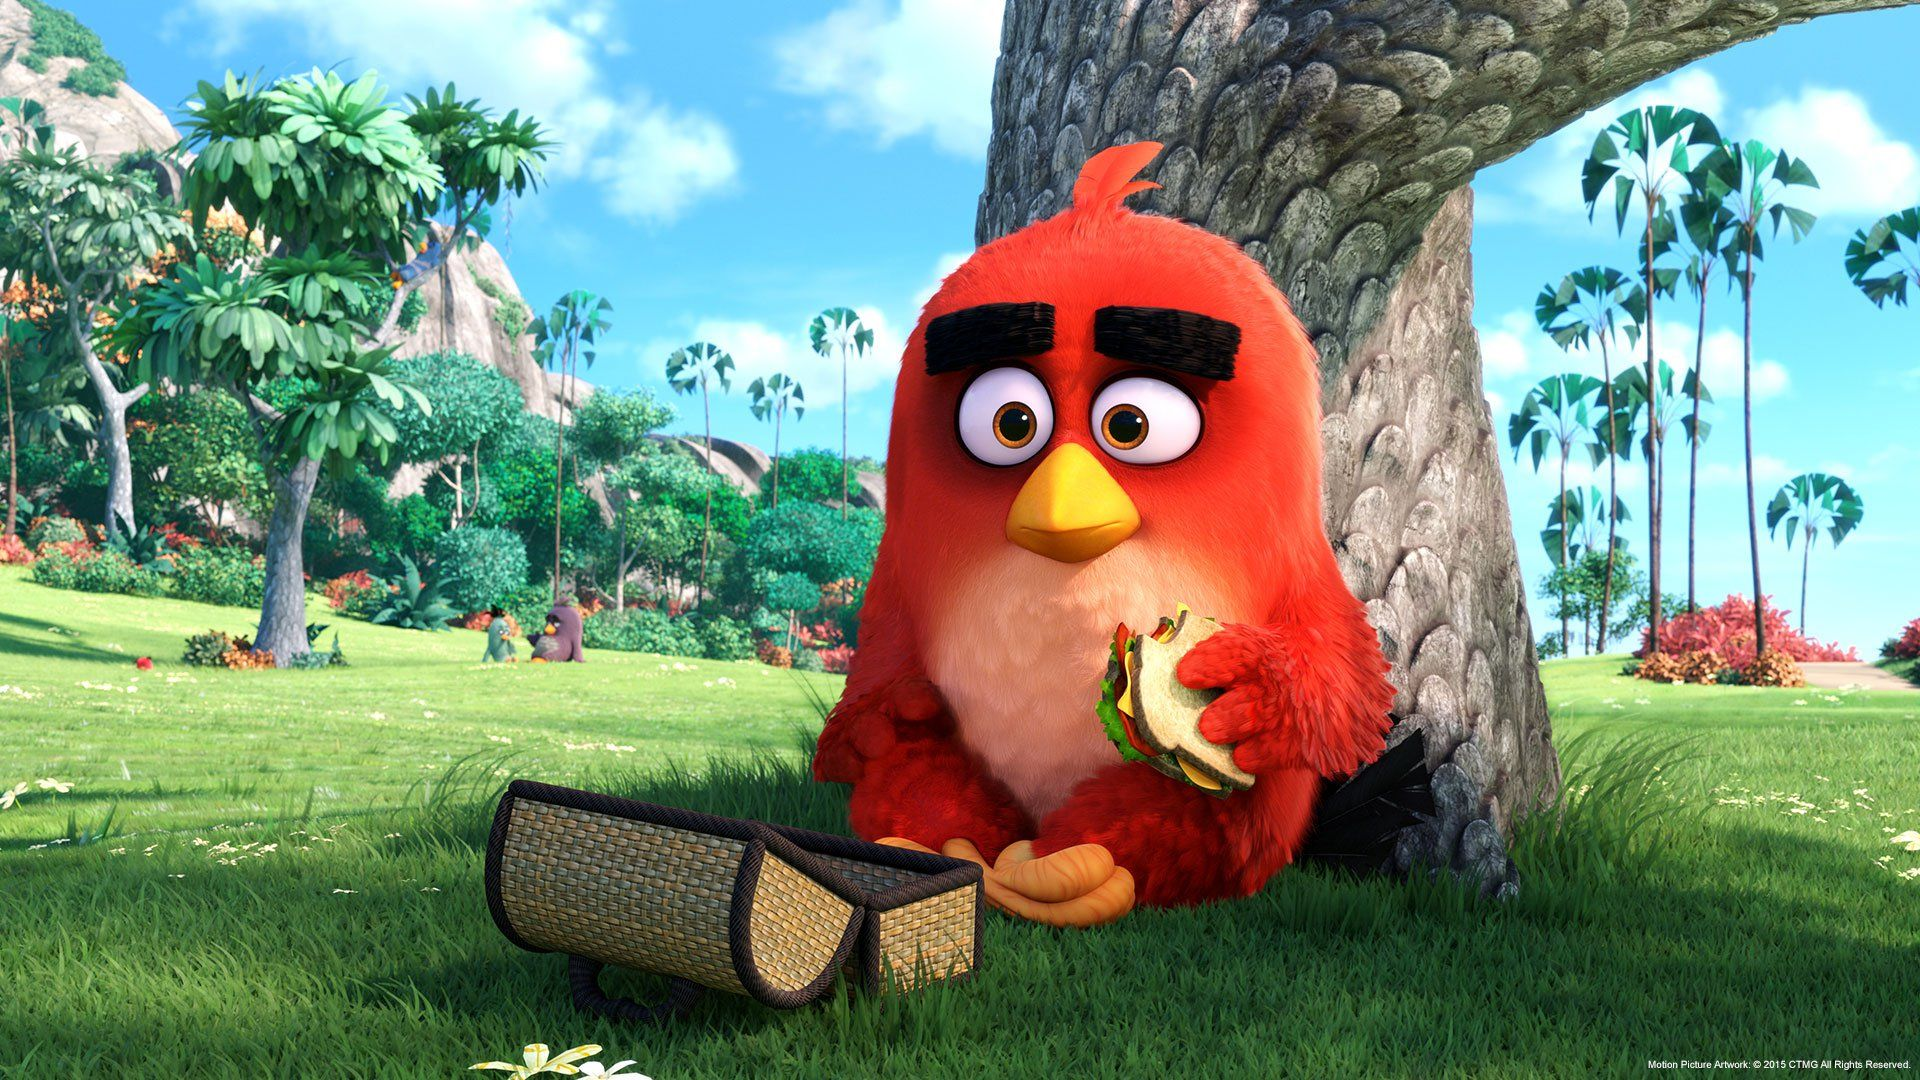 Collection Of Angry Birds Wallpaper Free Download For Pc On 1920x1080 41 Wallpapers